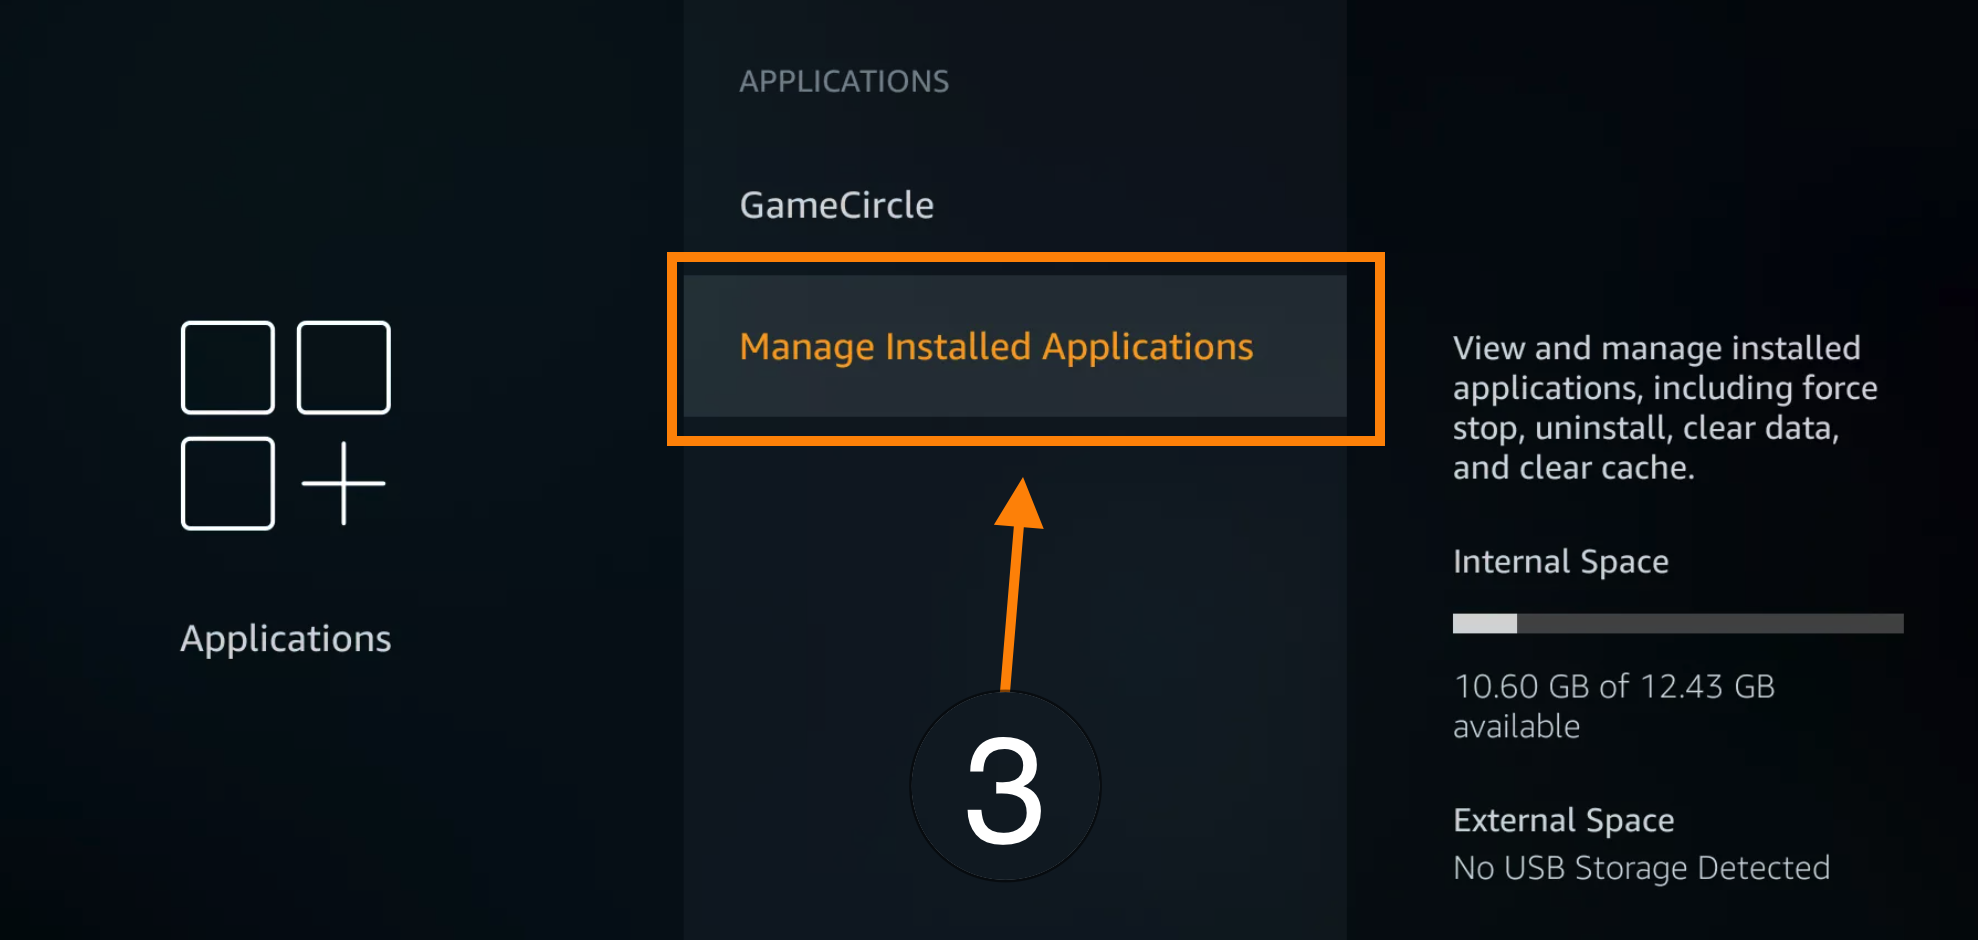 Manage-Installed-Applications-in-firestick